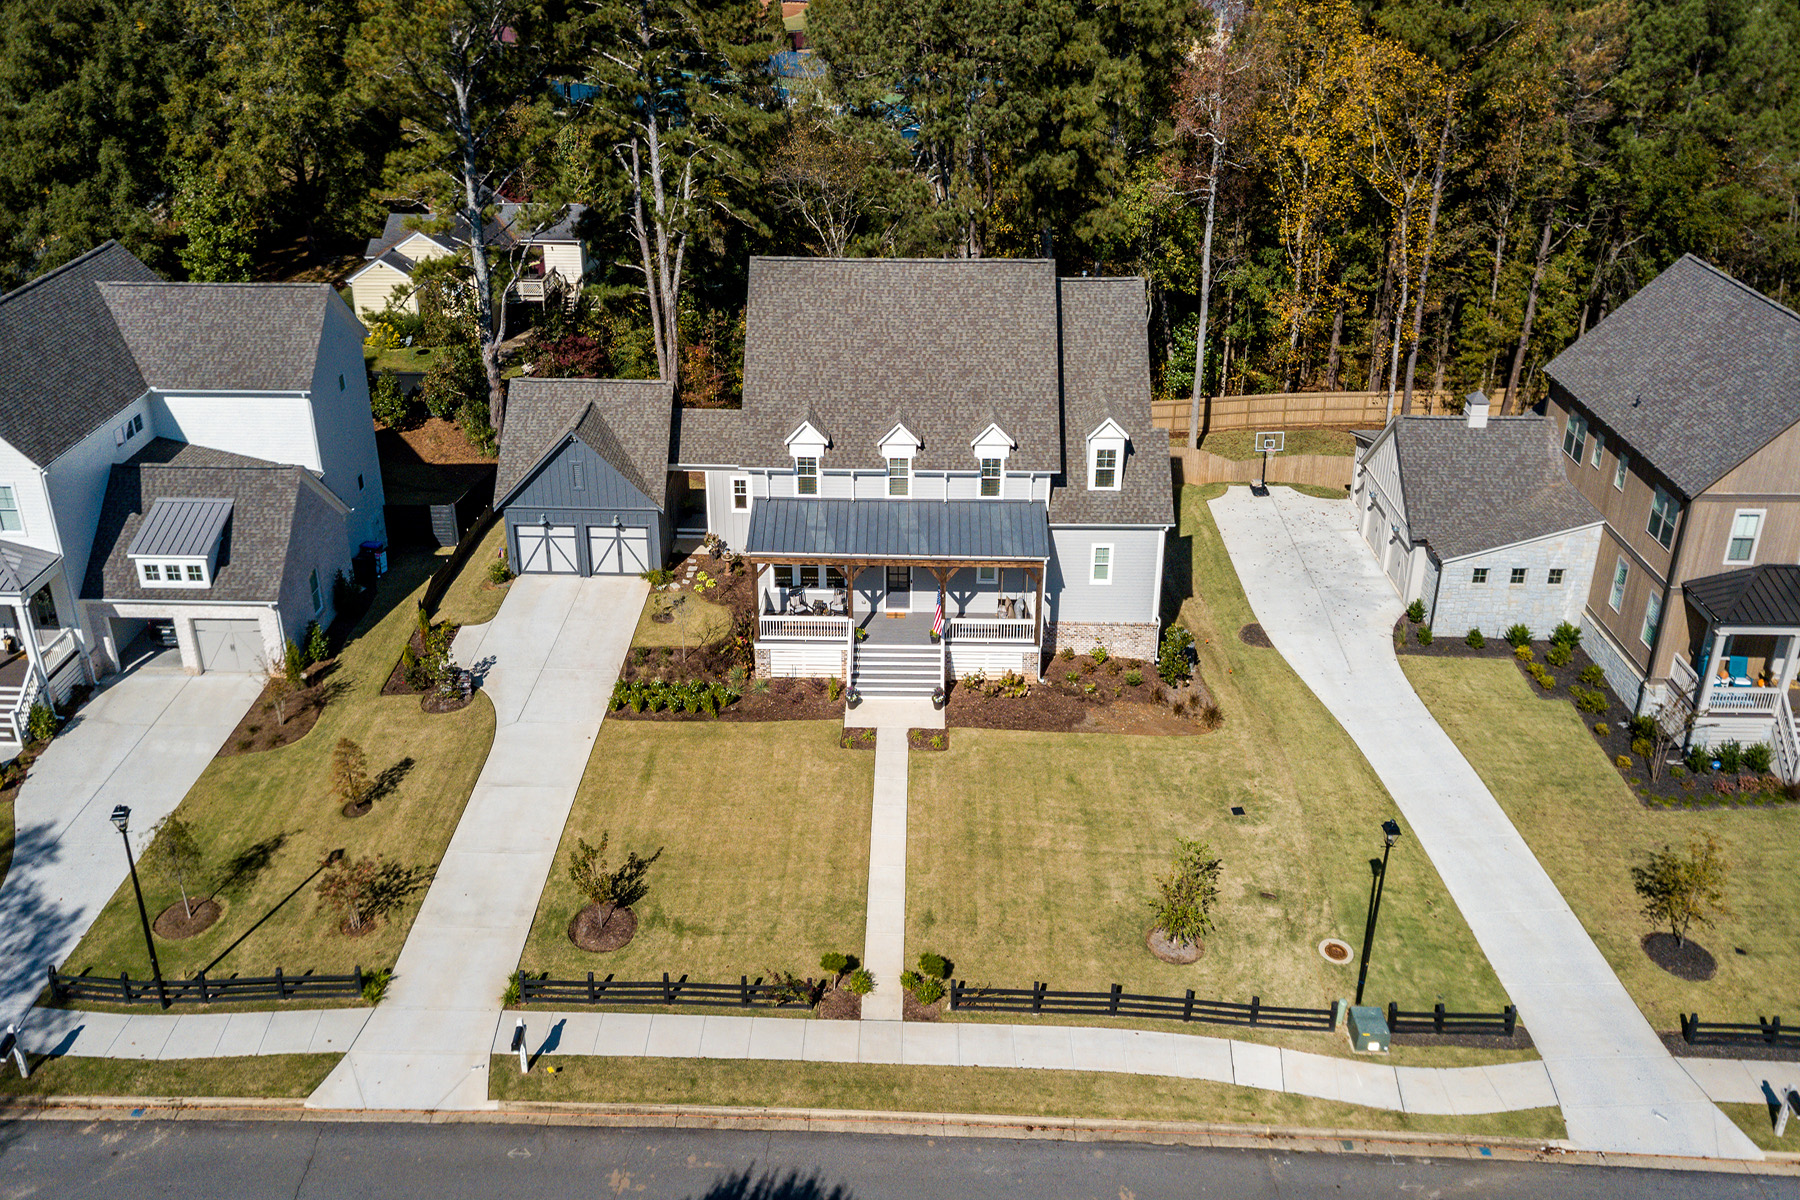 Single Family Home for Sale at Contemporary Farmhouse Style 1155 Allenbrook Ln Roswell, Georgia 30075 United States